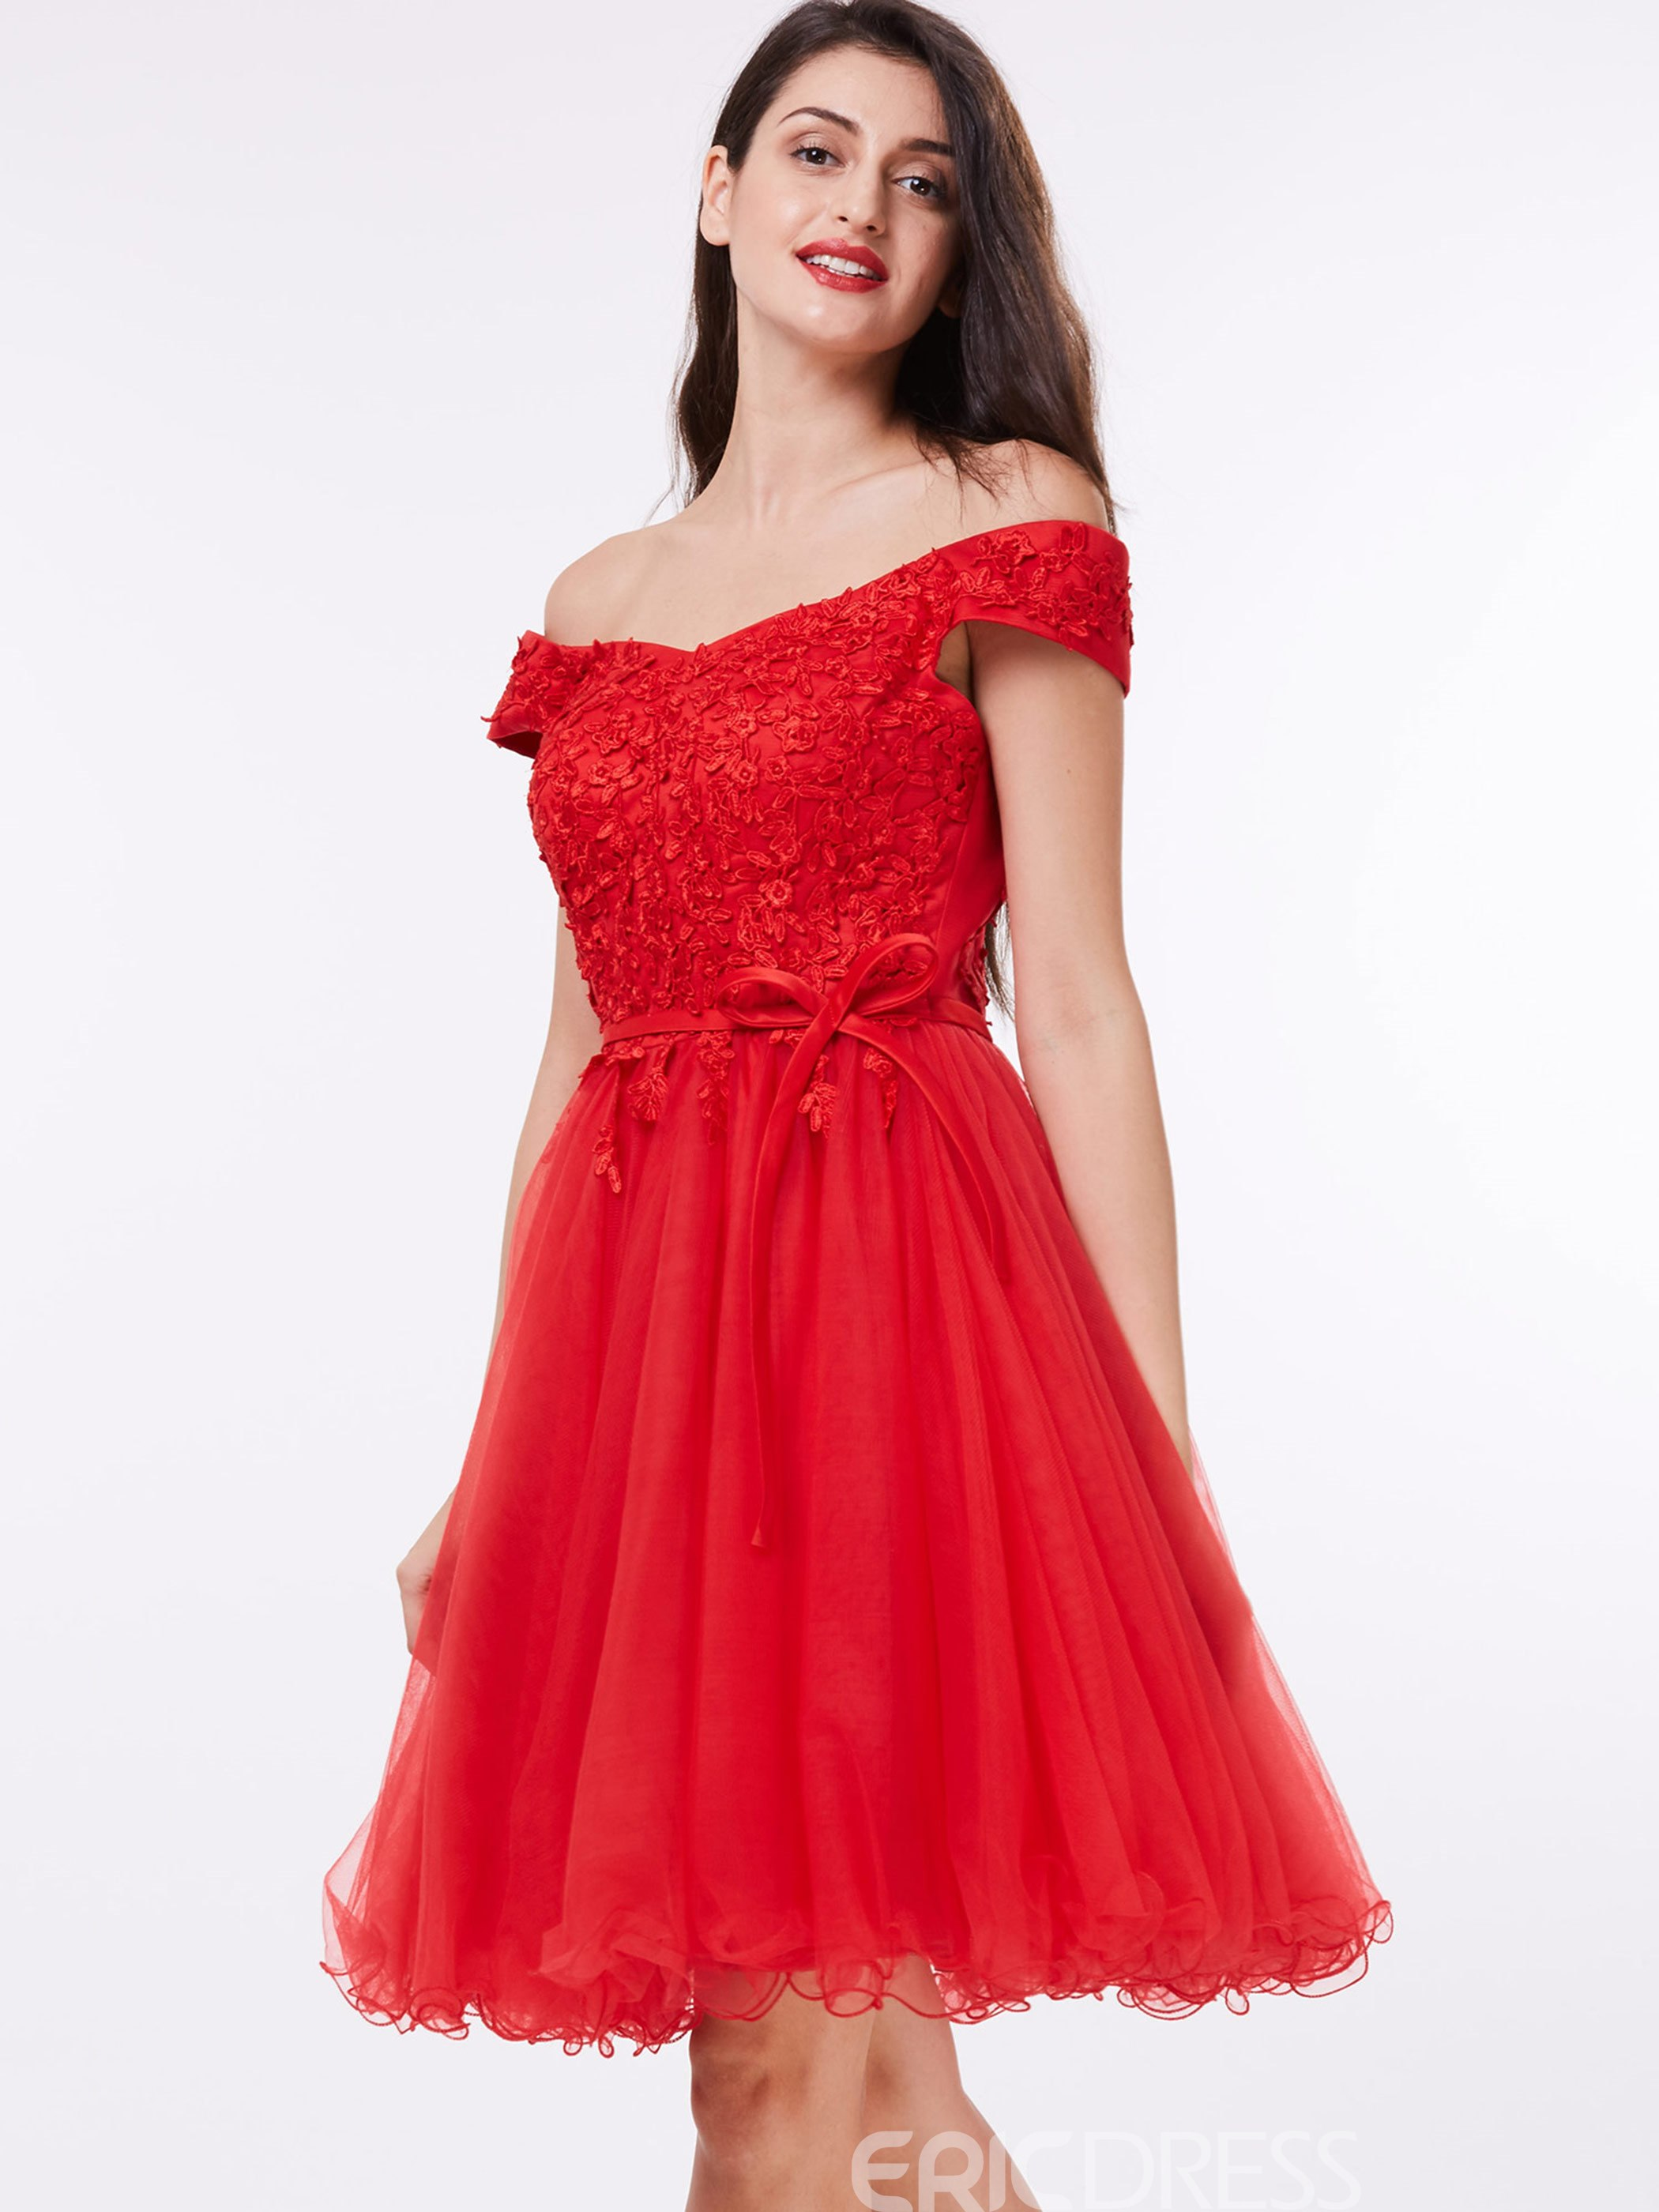 Ericdress Off the Shoulder Bowknot Appliques Red Homecoming Dress